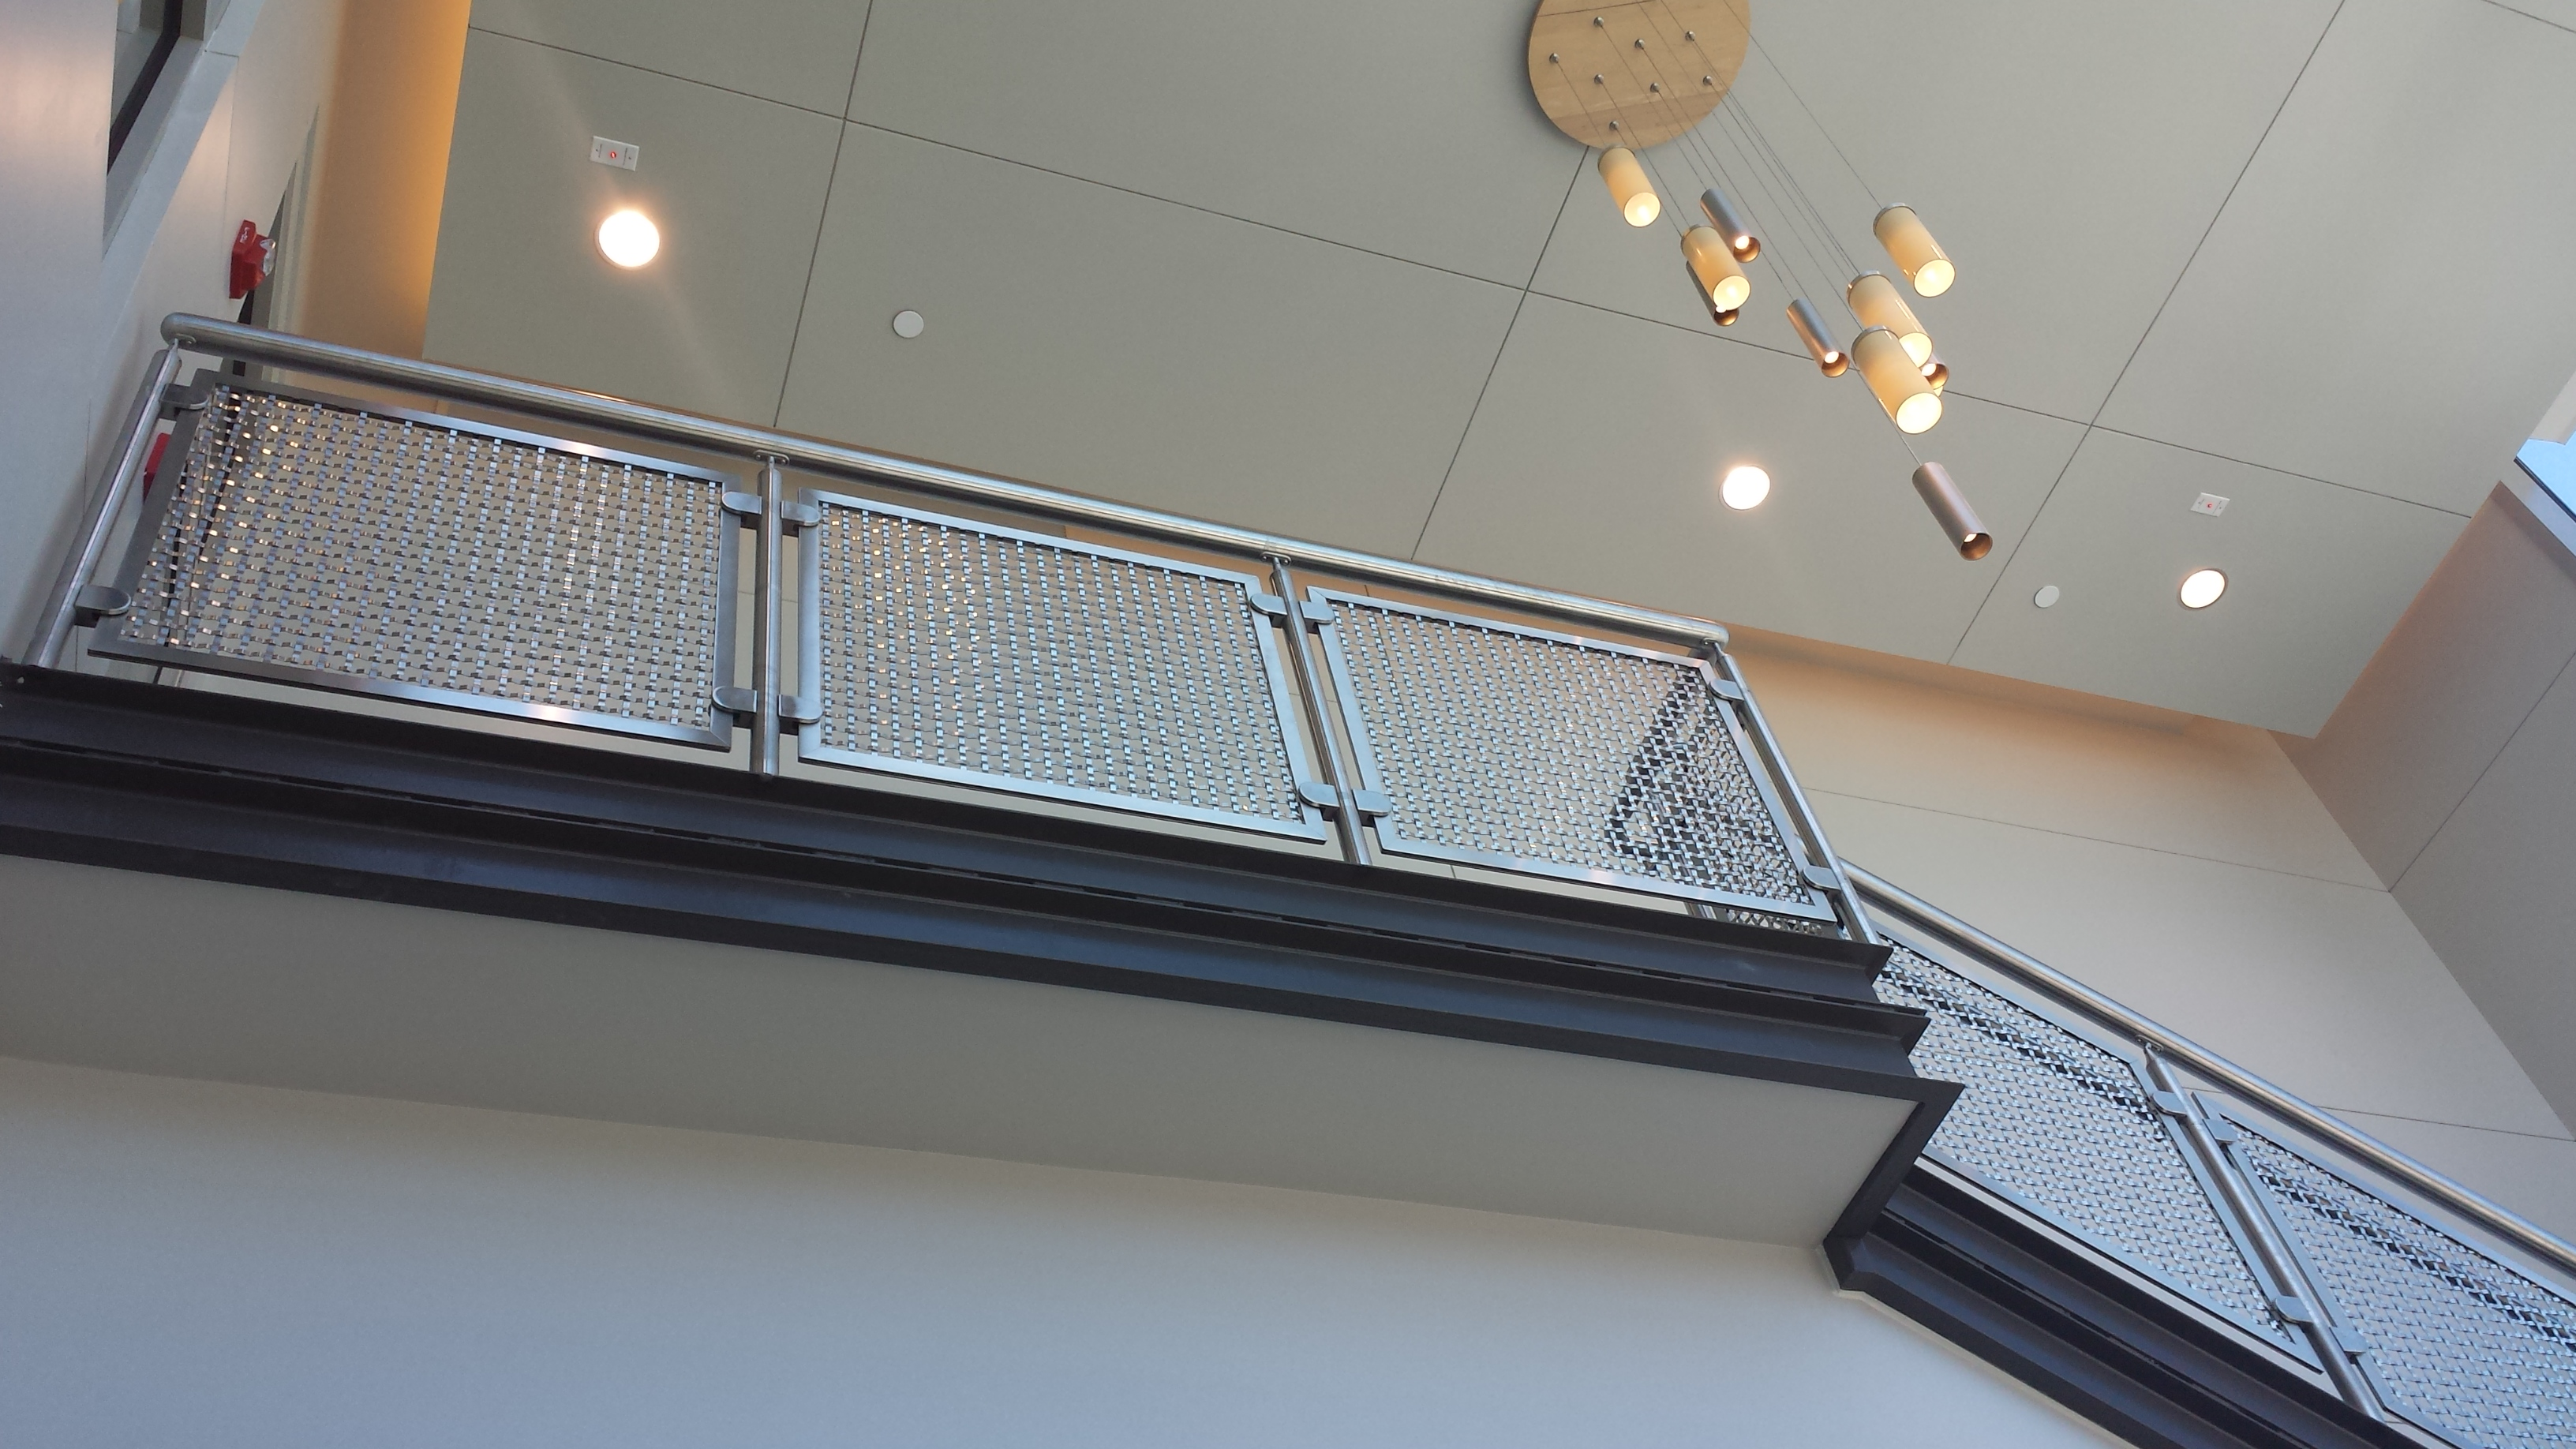 Standard glass clips were used in the mounting of this S-15 architectural mesh and Versatile Spine frame.